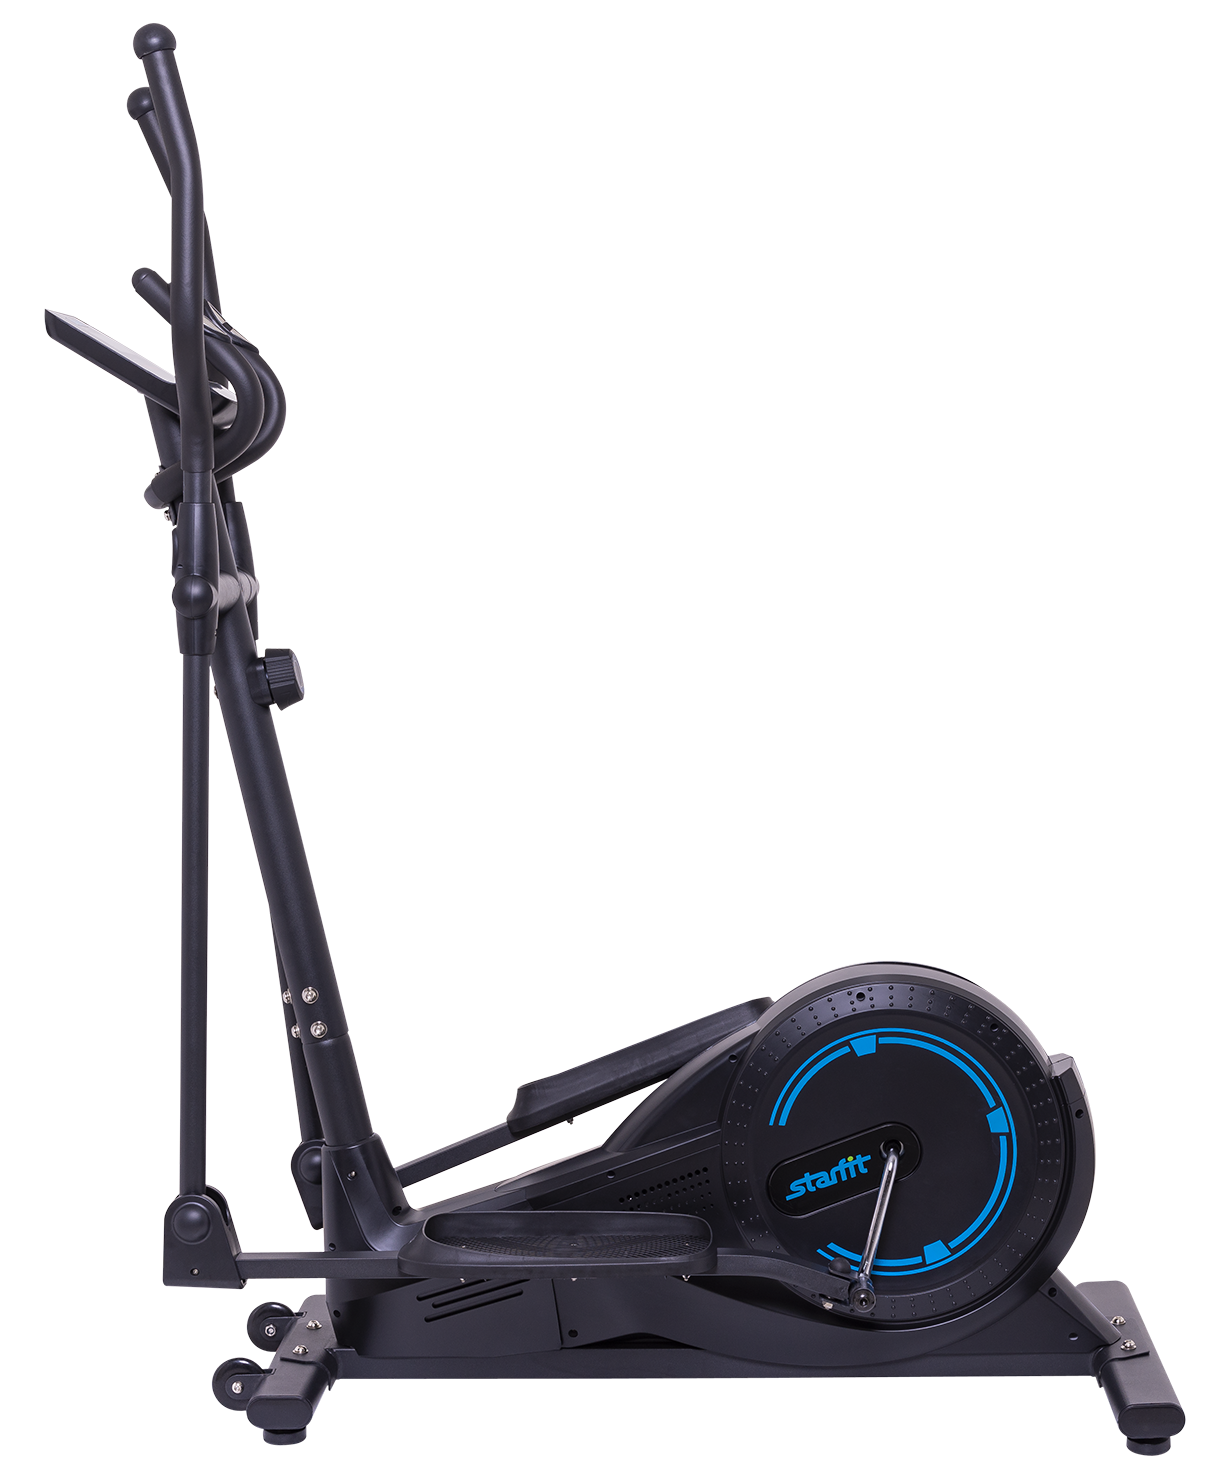 Gym fitness equipment PNG